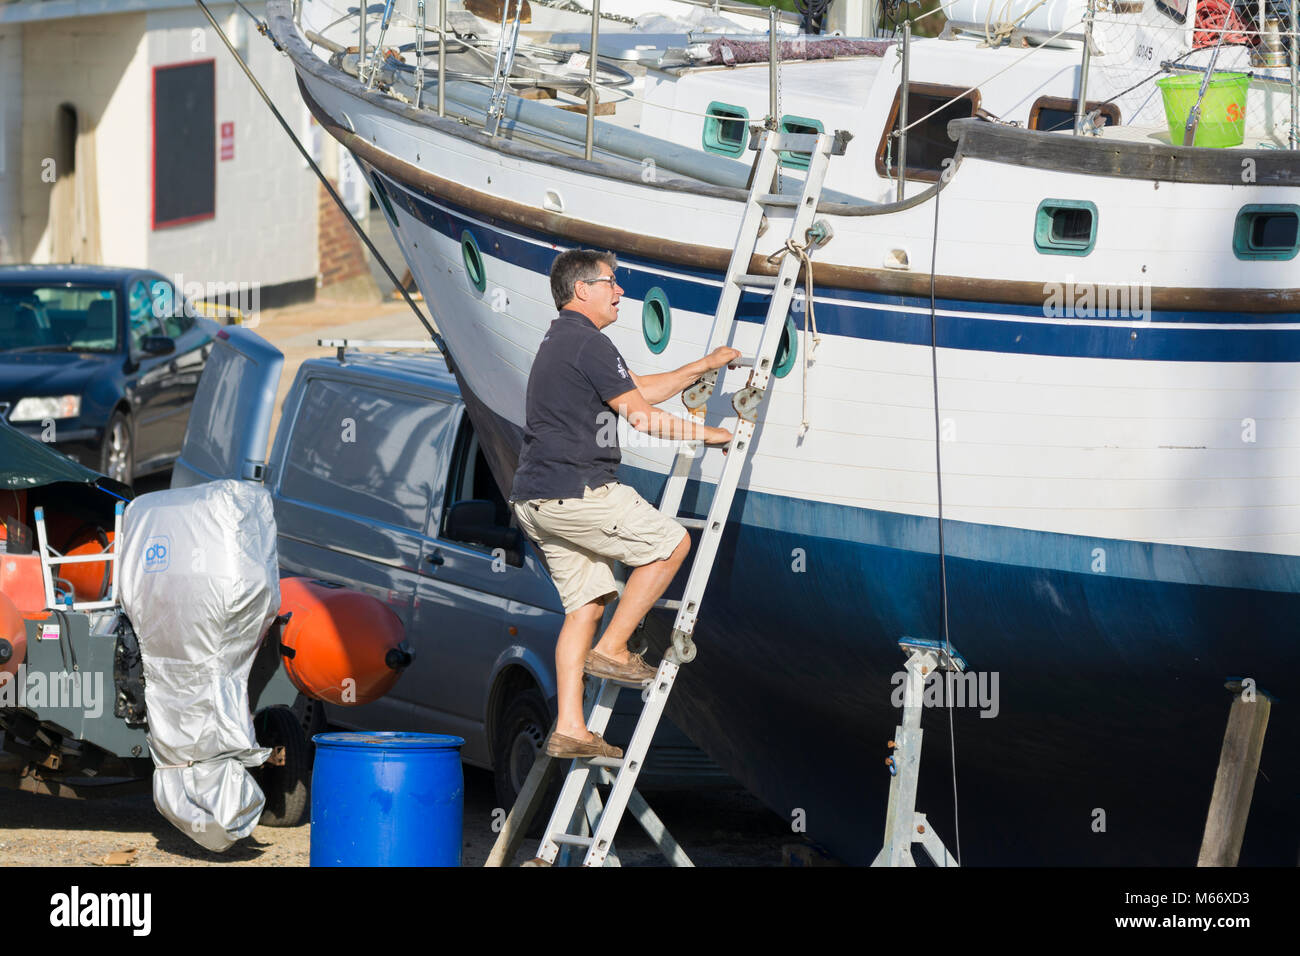 Man climbing up a ladder onto a boat on stands in dry dock, out of water in a boat yard. Boat maintenance. - Stock Image